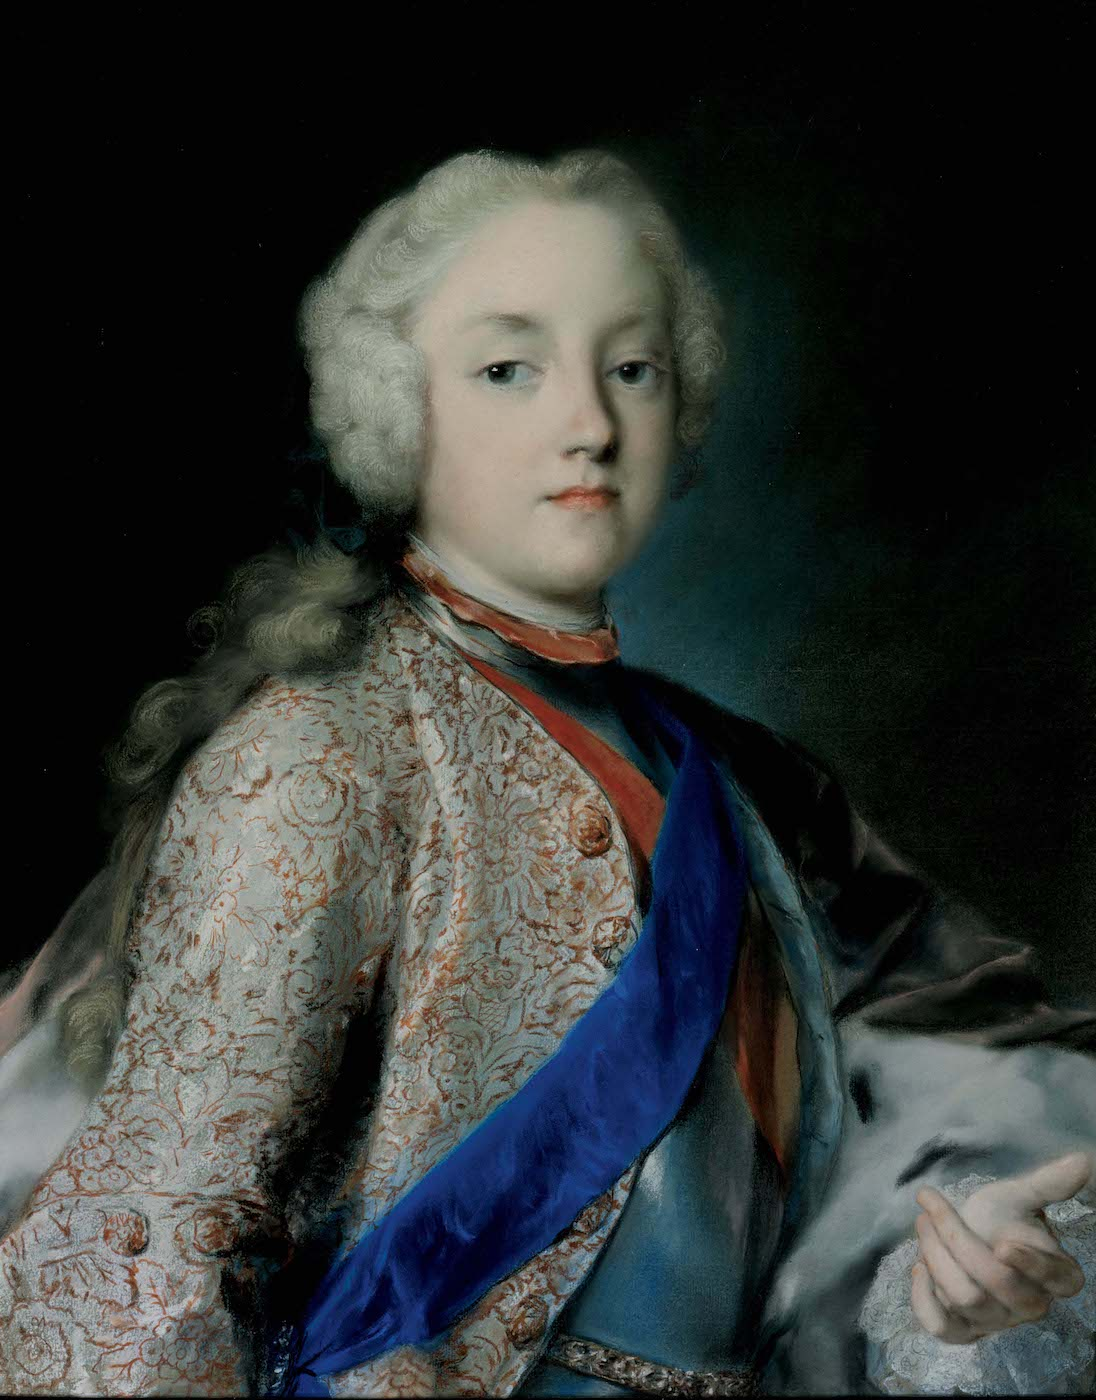 Portrait of crown prince Friedrich Christian of Saxony by Rosalba Carriera around 1739-1740 (Gemäldegalerie Alte Meister, Dresden). Rosalba Carriera was a female rococo painter from Venice, Italy, who was admired by the crown prince's father Frederick Augustus II, Prince-Elector of Saxony and King of Poland.